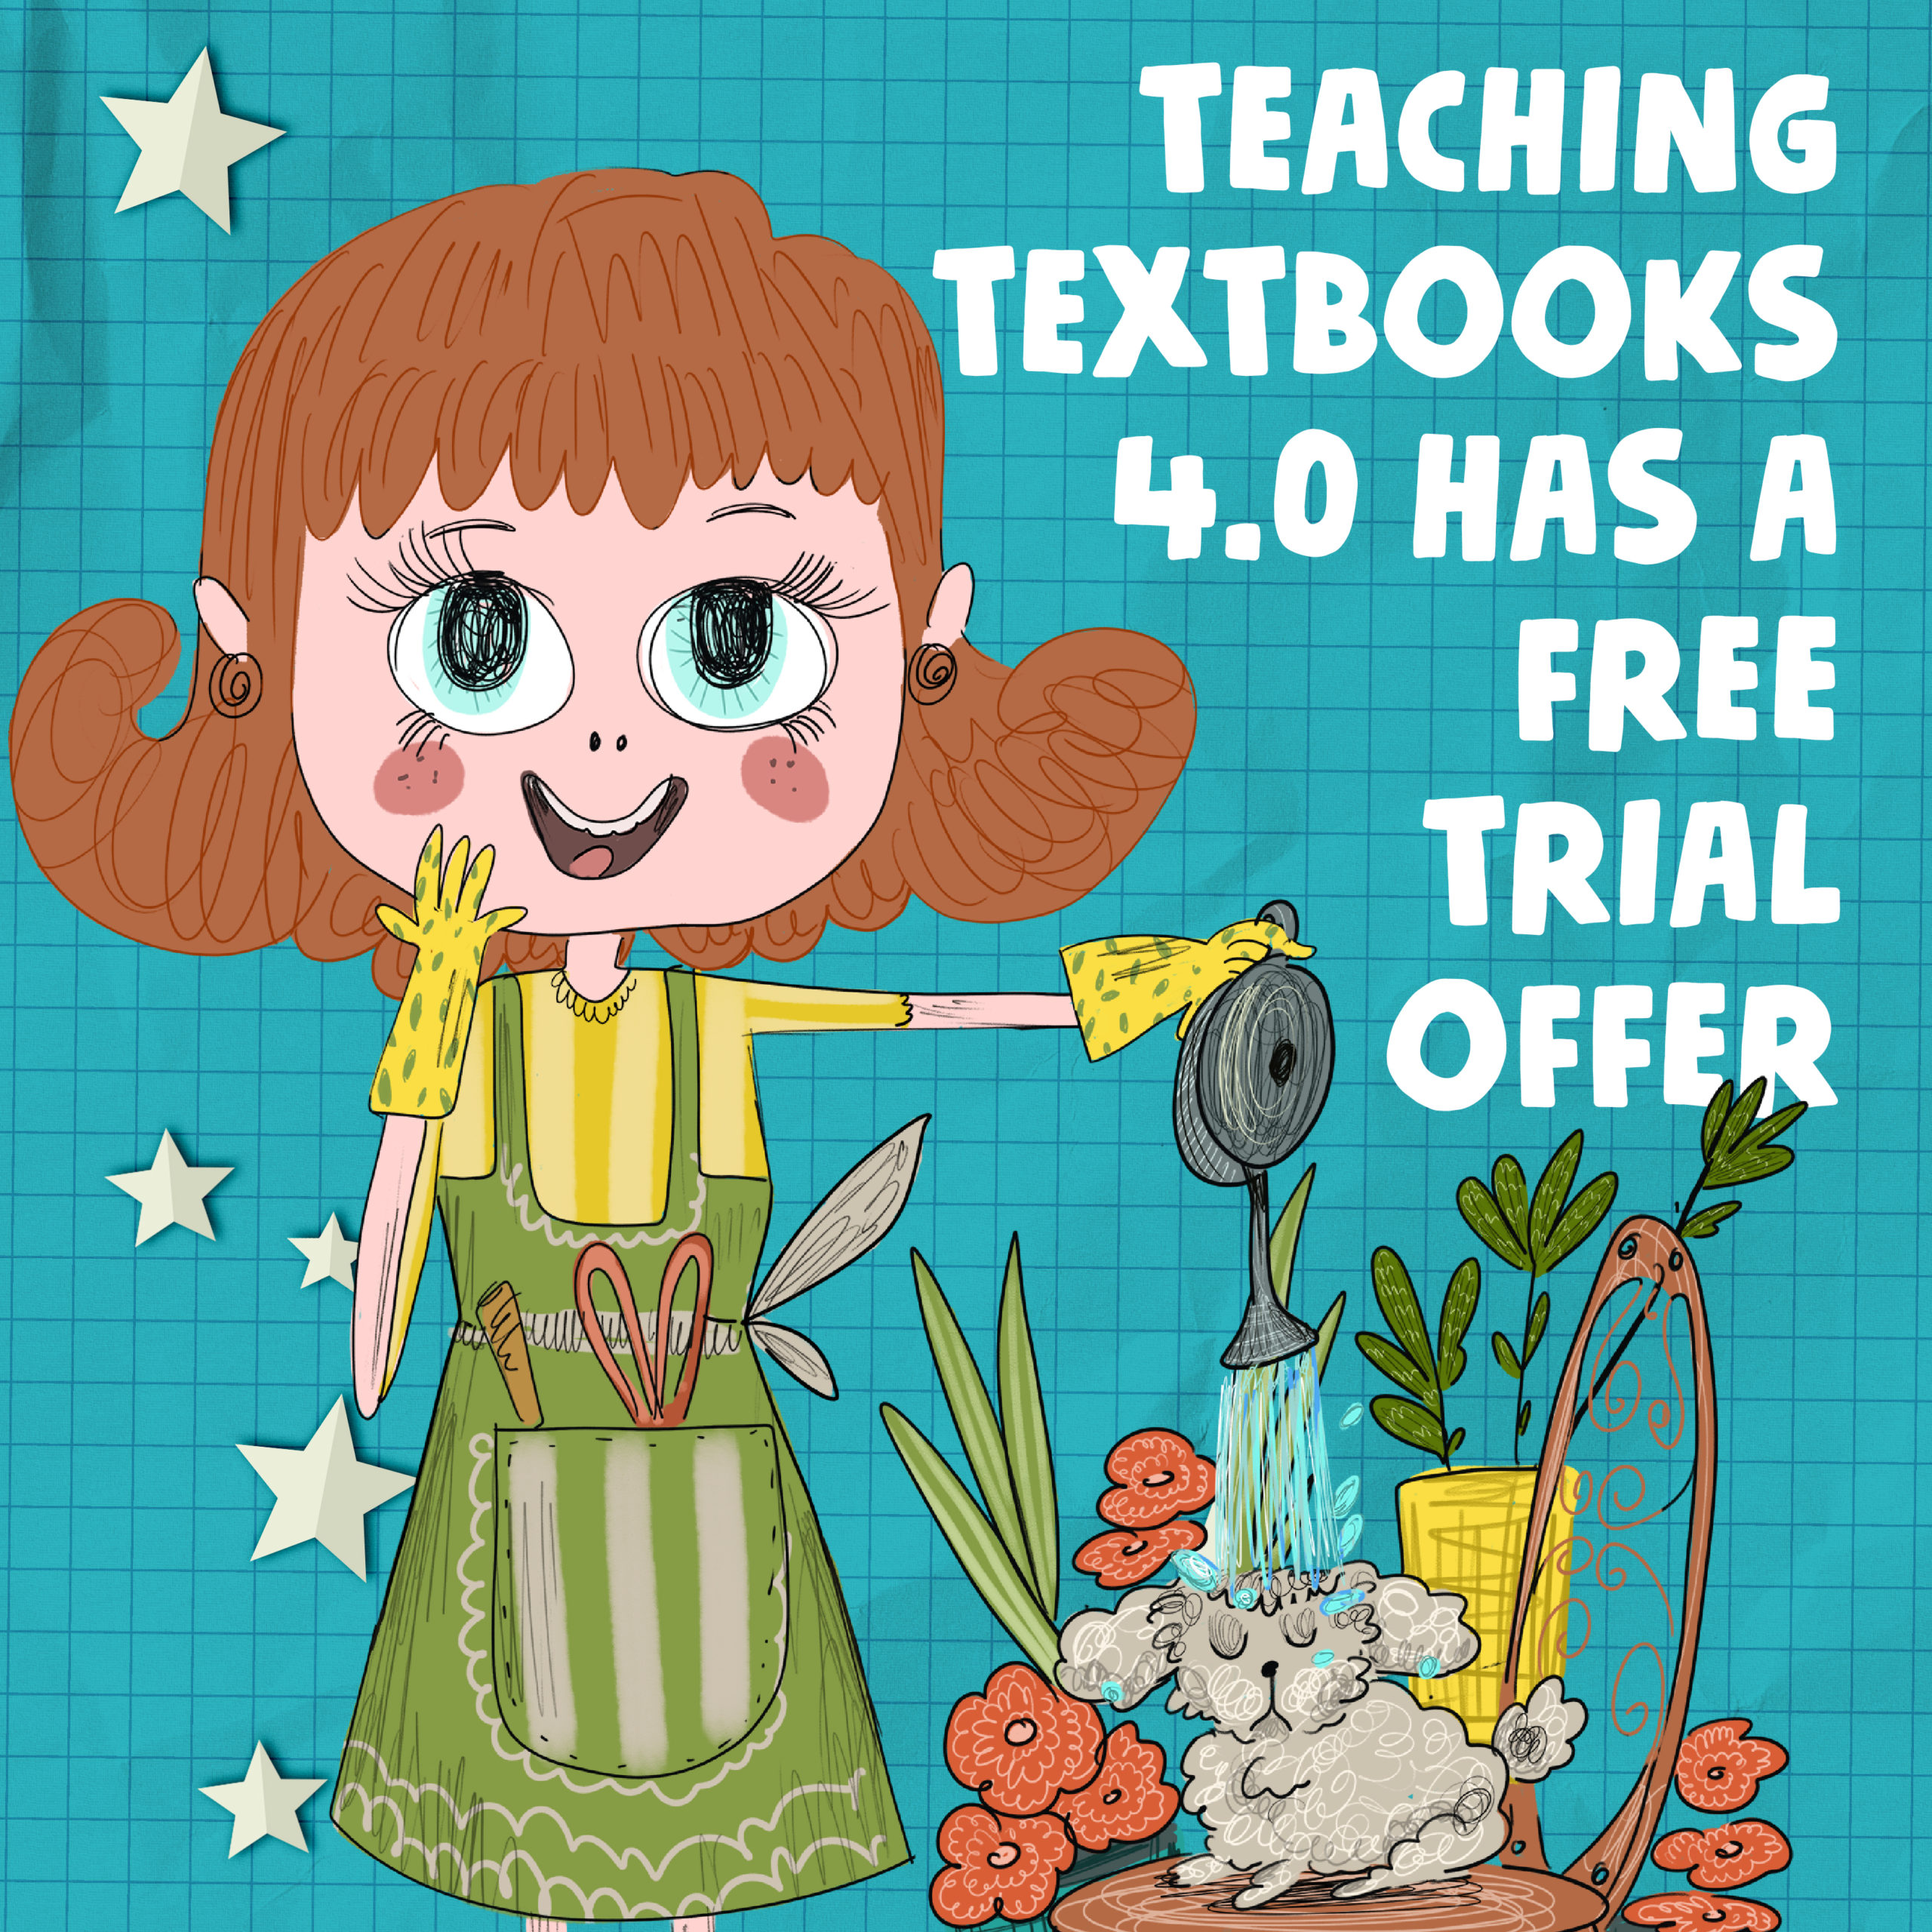 Graphic explaining teaching textbooks has a free trial, drawing of a woman gardening